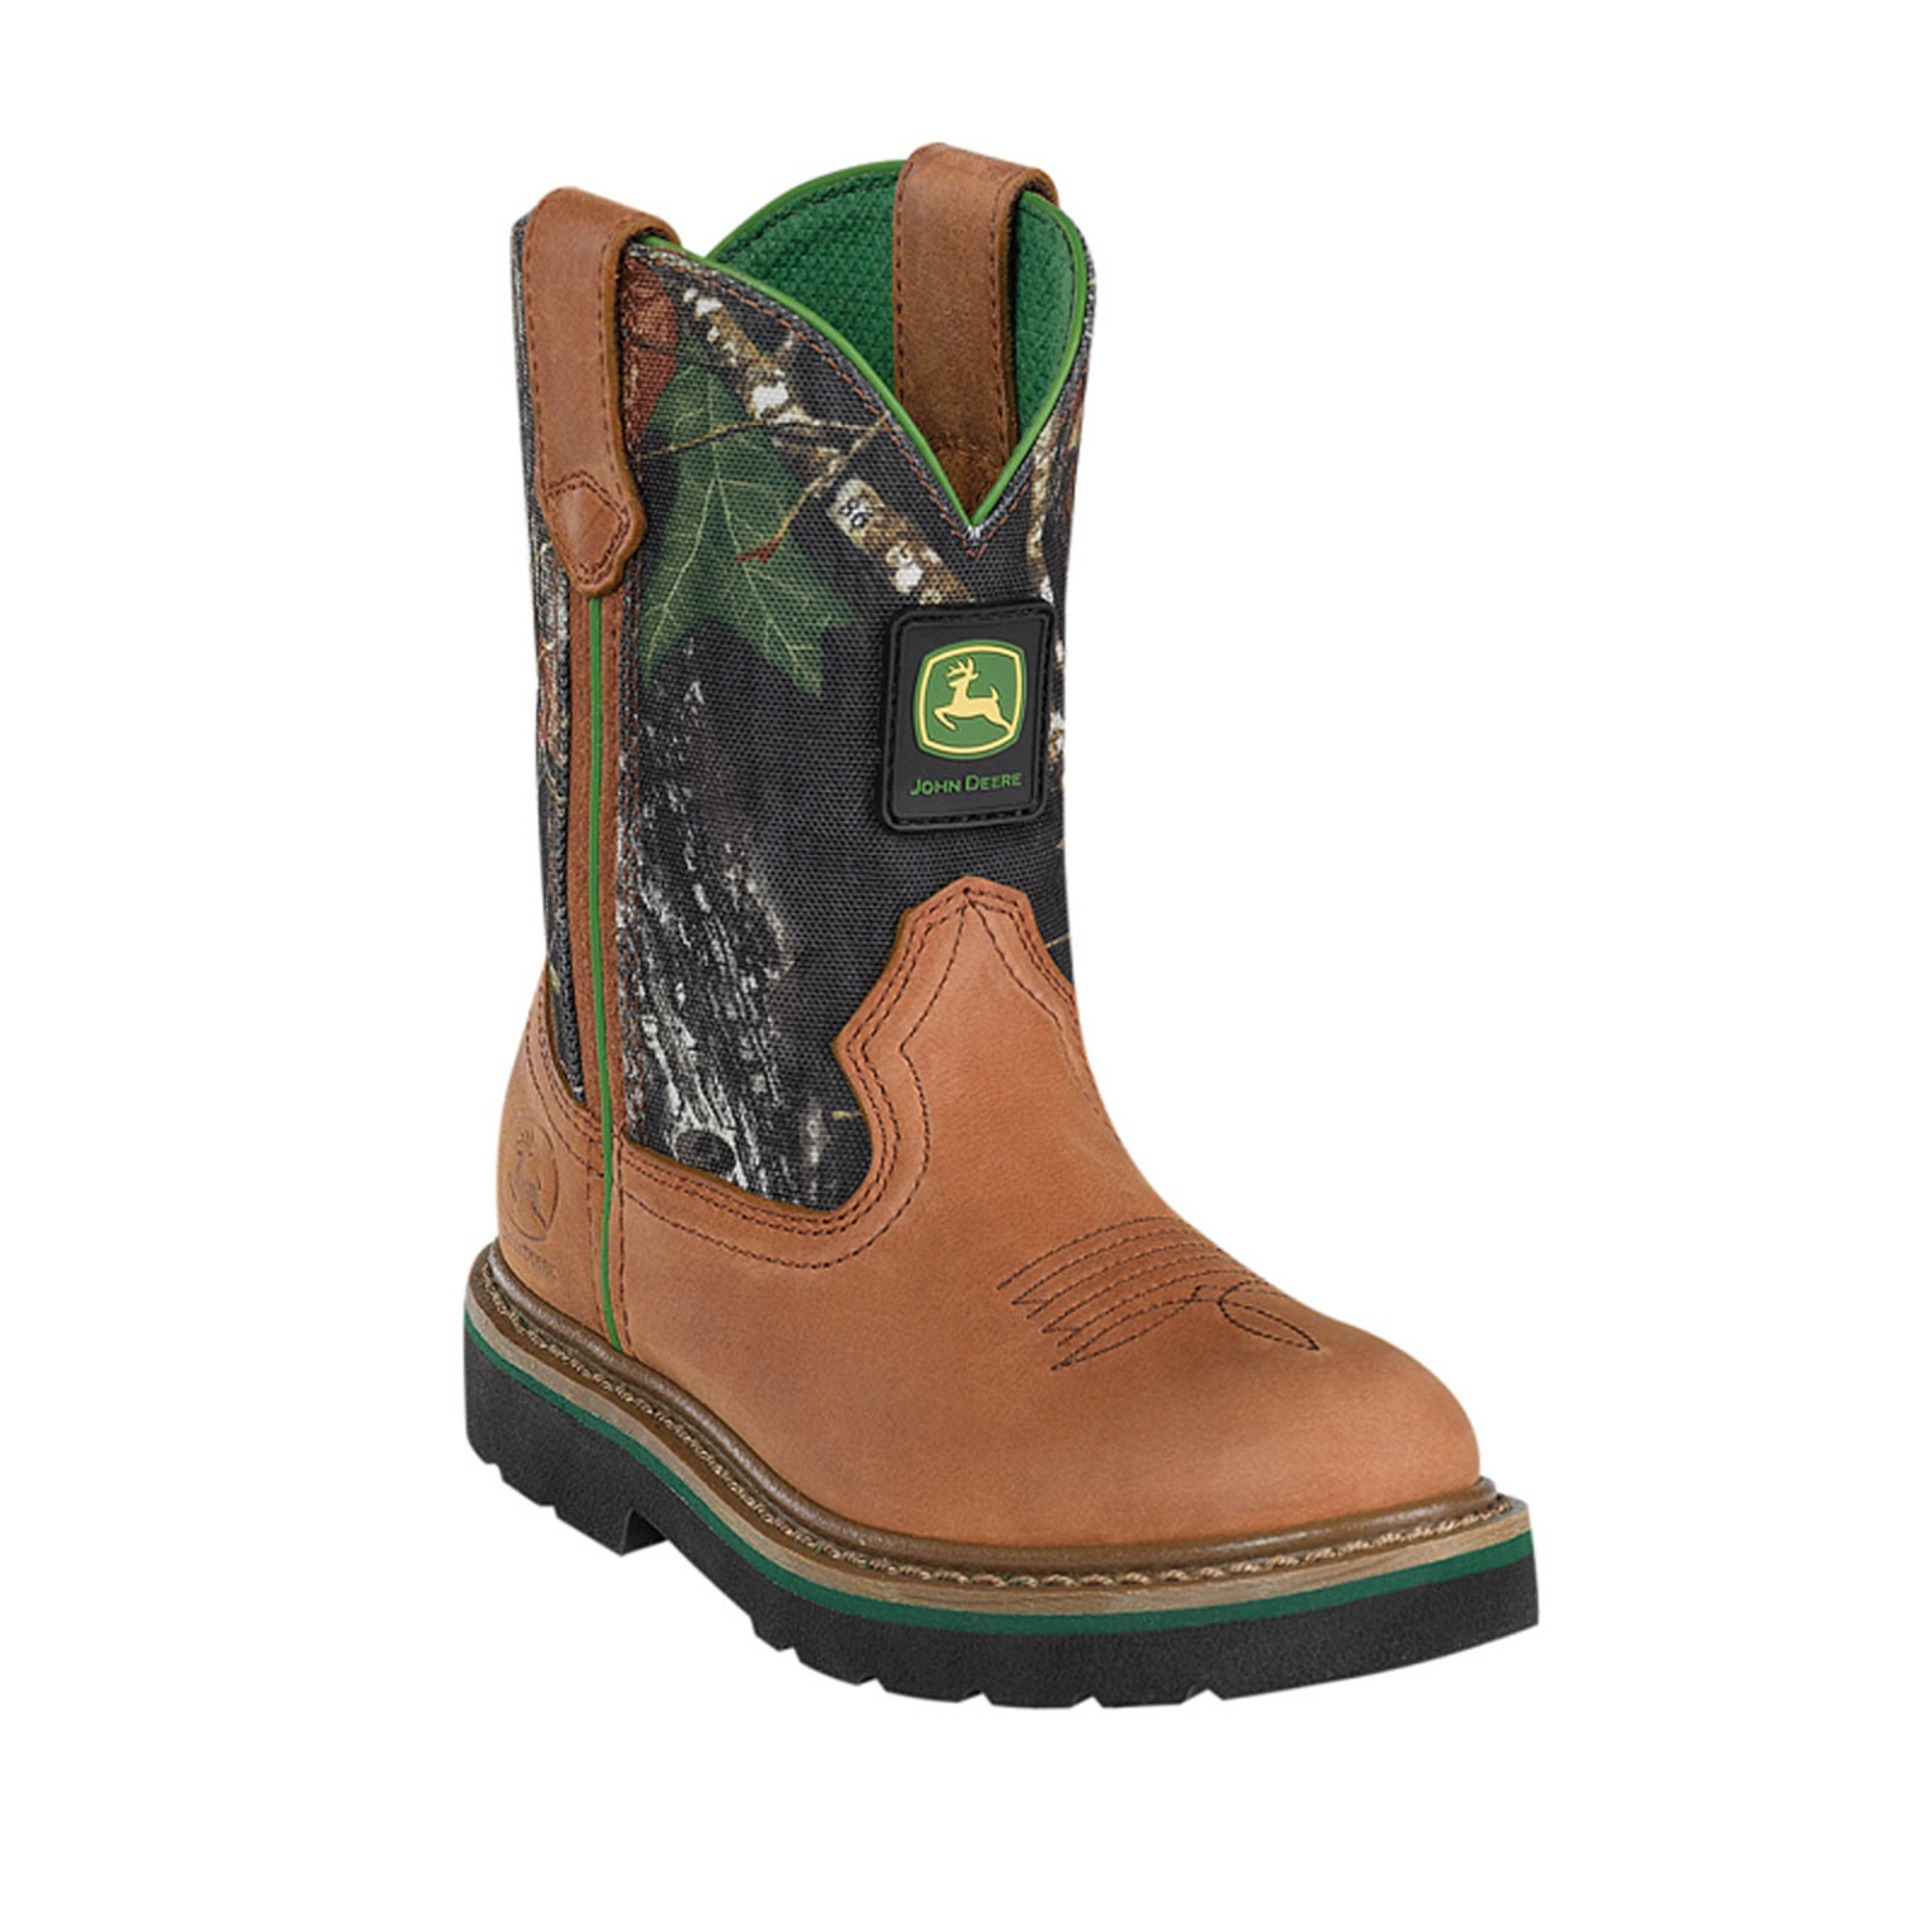 John Deere Youth Boys Camo Mossy OAK Leather Classic Pull ON Cowboy ...